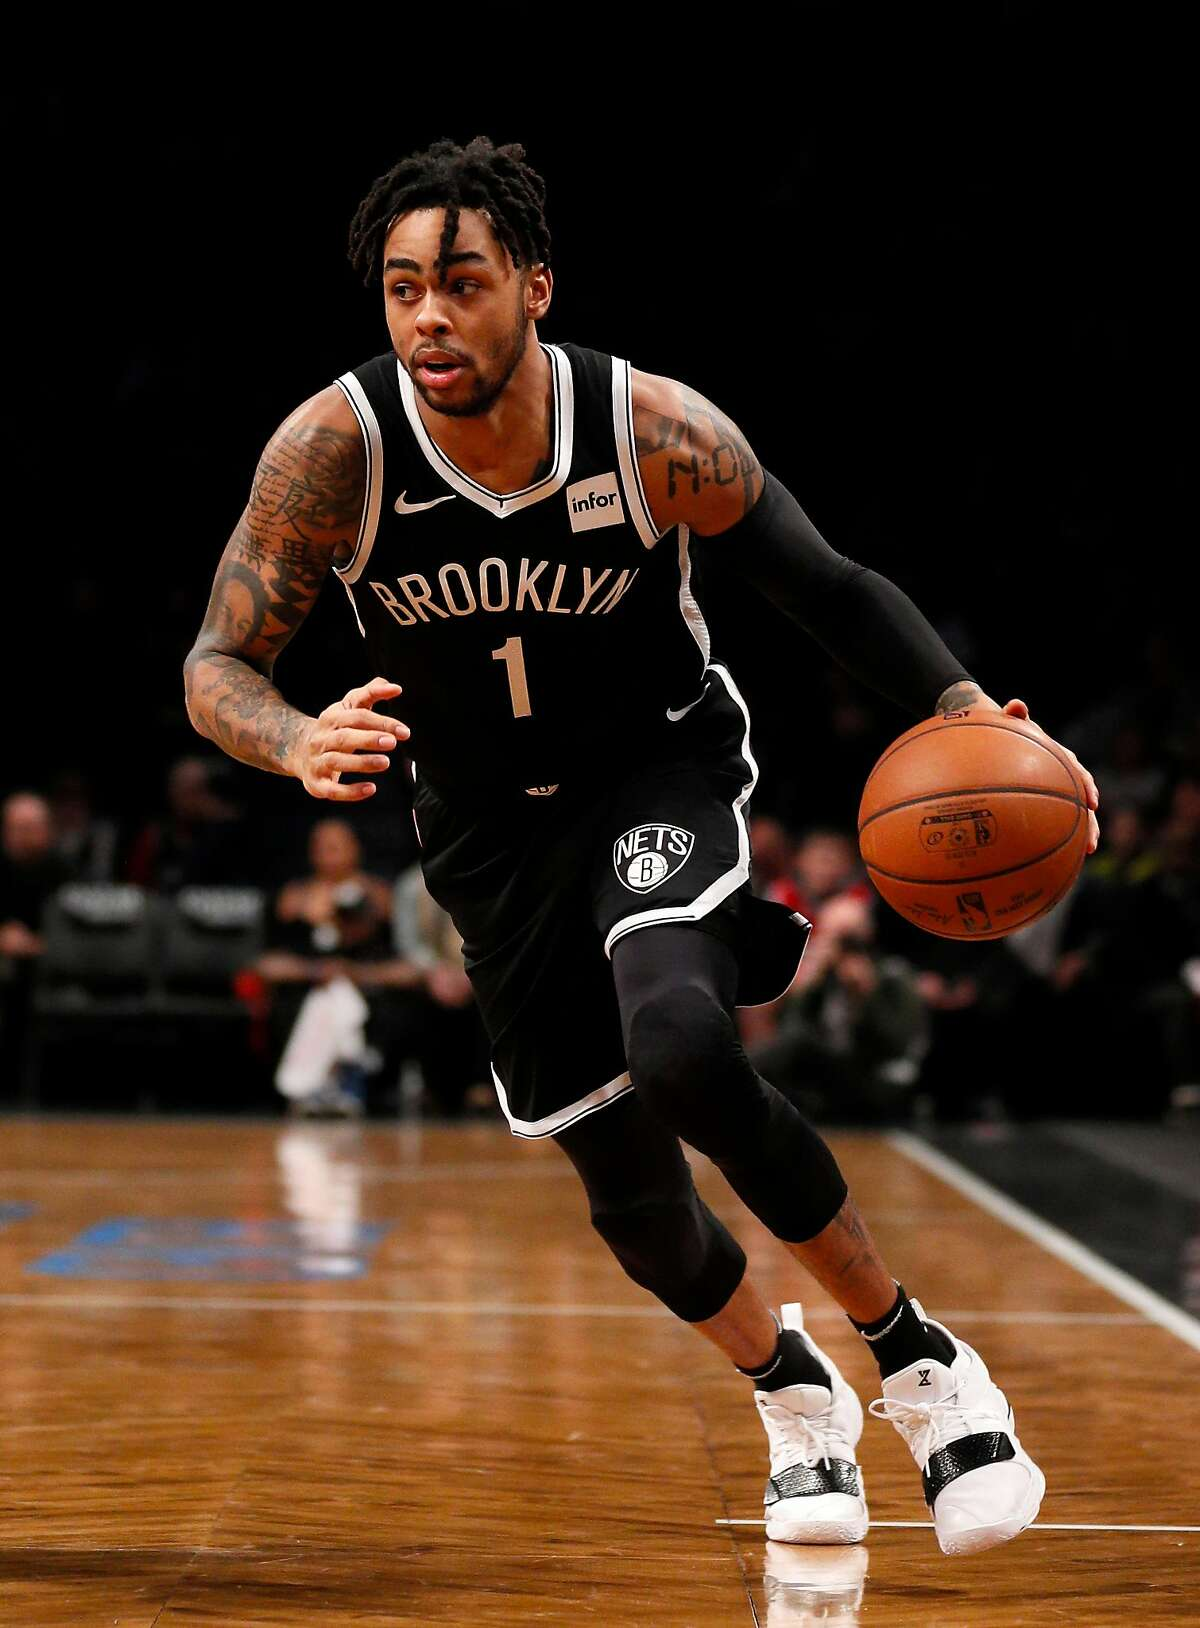 D'Angelo Russell #1 of the Brooklyn Nets in action during an NBA basketball game against the Philadelphia 76ers on November 25, 2018 at Barclays Center in the Brooklyn borough of New York City. Philadelphia won 127-125.